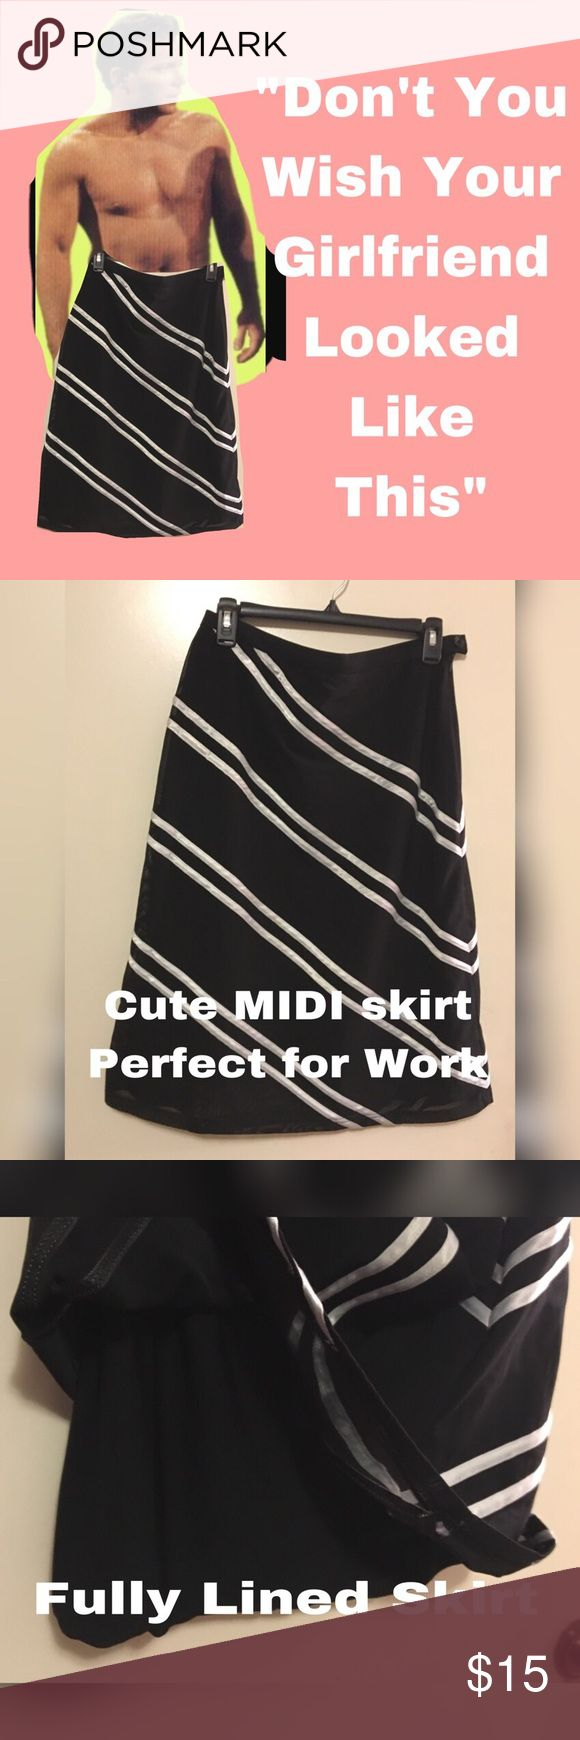 "🌺🌺 Cute Striped MIDI Skirt PERFECT for work 🌺🌺 🌺Cute Striped MIDI Skirt PERFECT for work 🌺. Diagonal strips, side zipper, A-Line skirt.  Waist: 16"" Flat, Length: 26"" long size Large.  Pair with blazer and boots for a sleek office look. Skirts Midi"